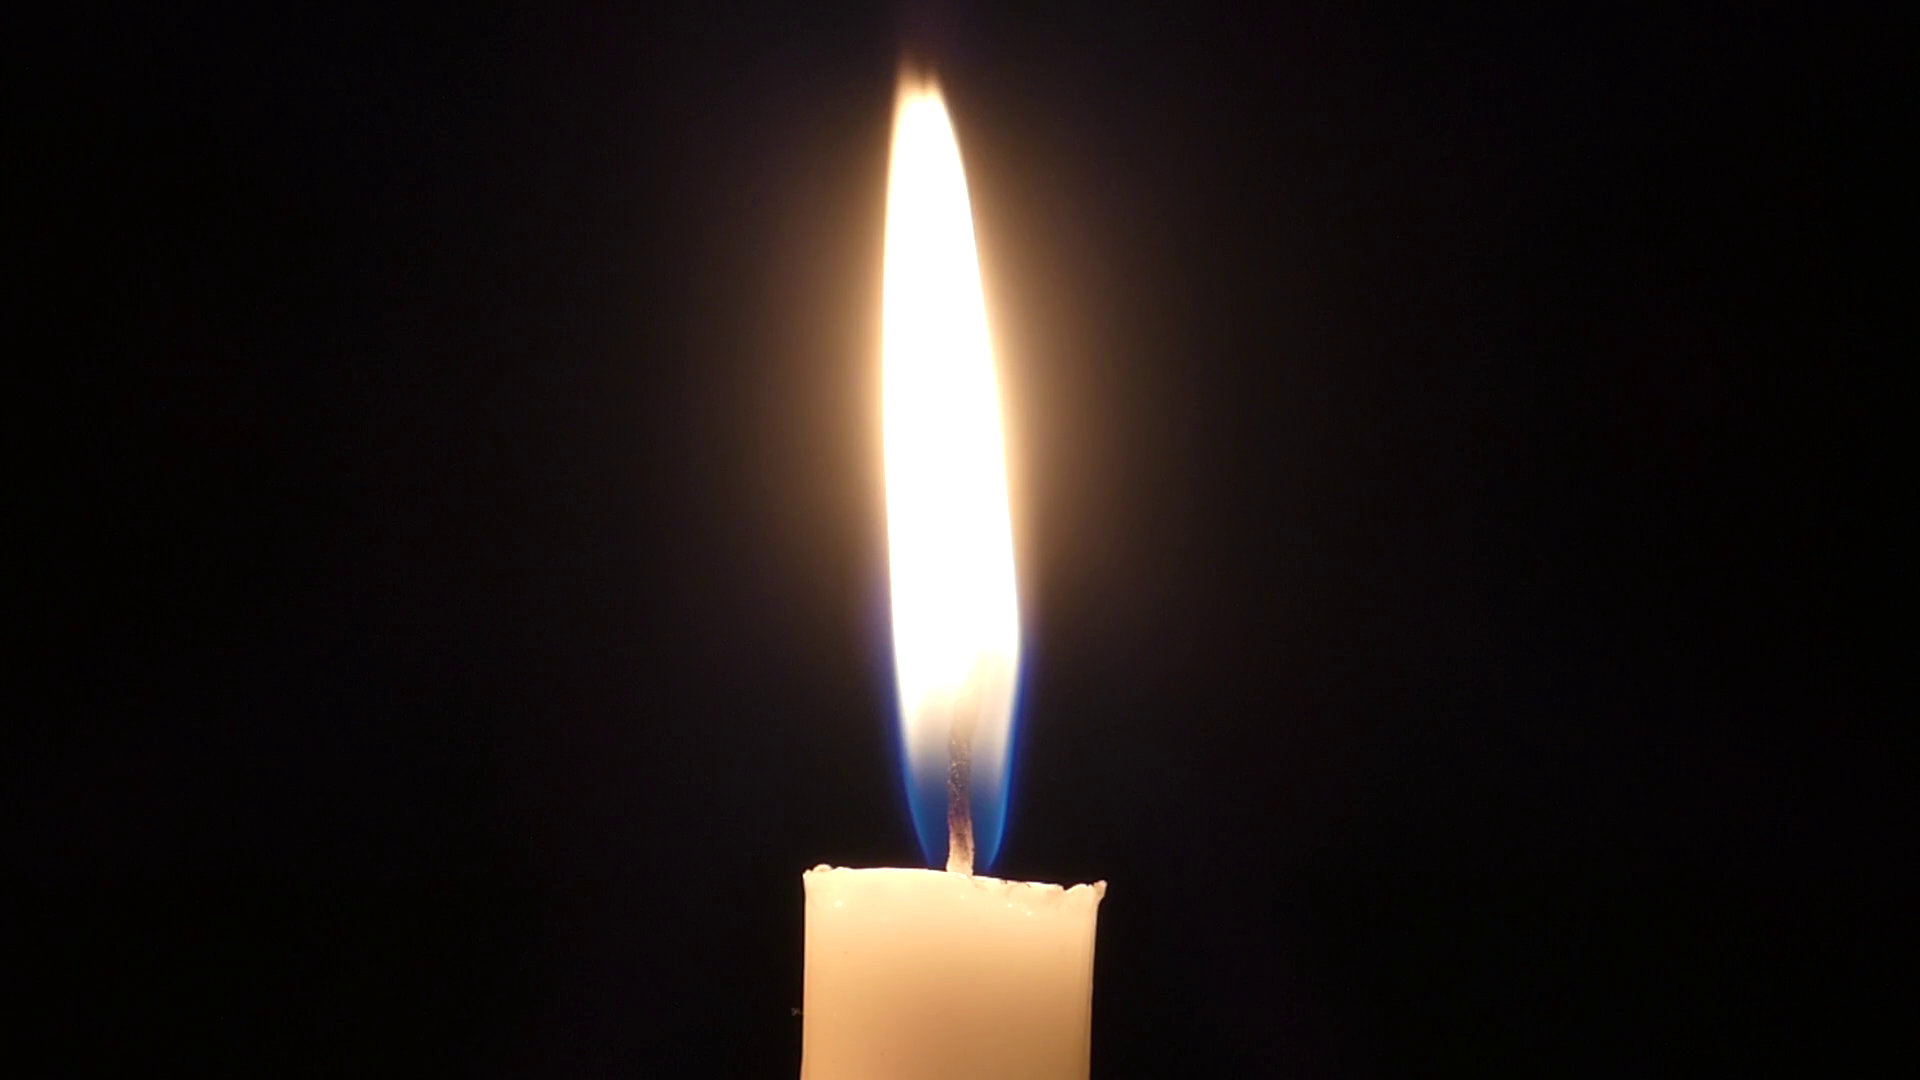 a Lit Candle Flame Blinking at Night. Stock Video Footage - Videoblocks